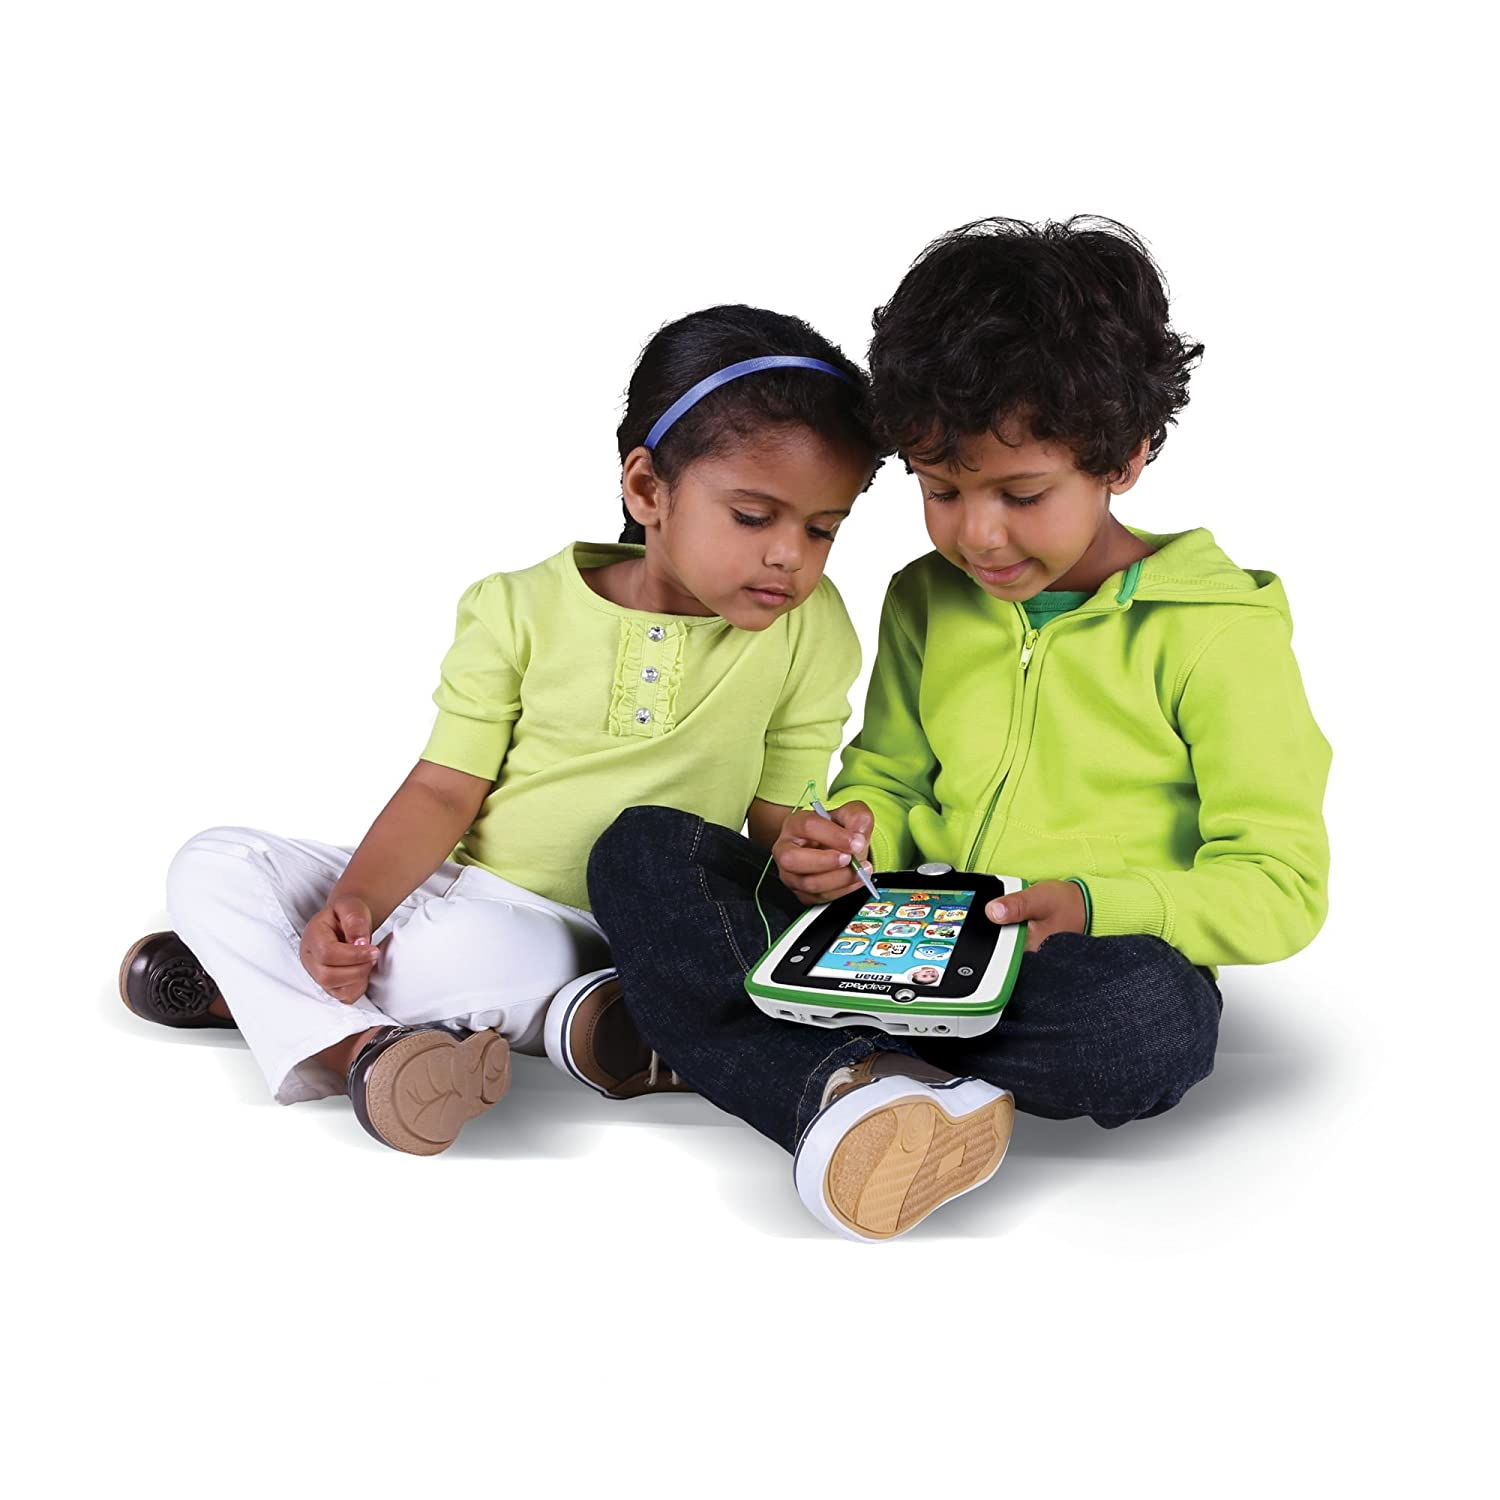 LeapFrog LeapPad2 Power Kids' Learning Tablet